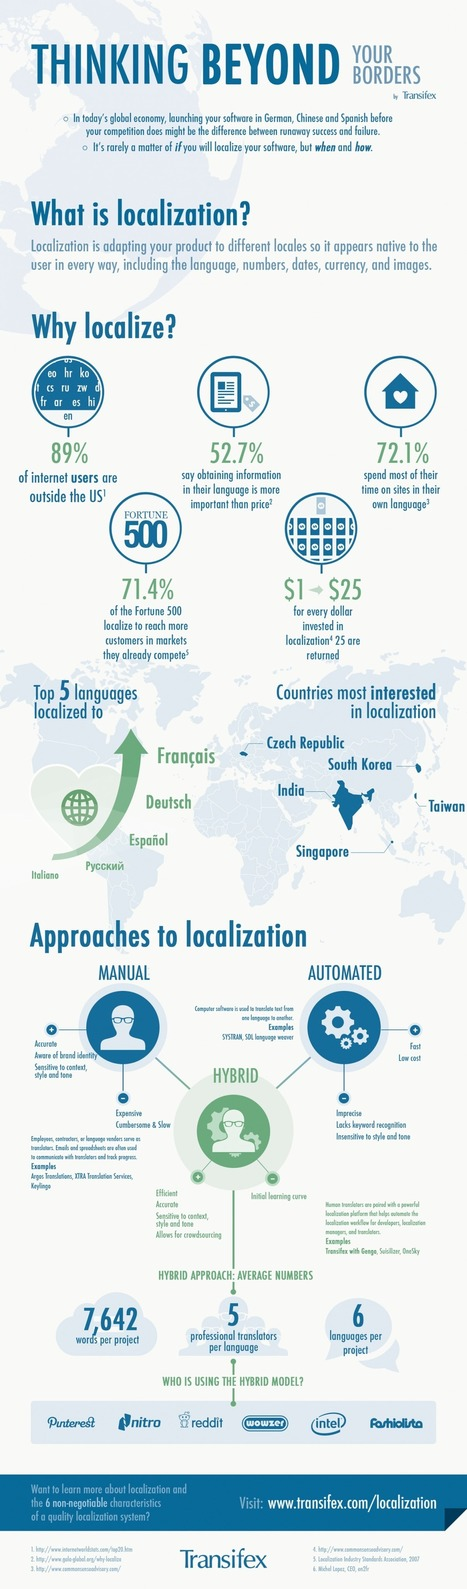 Thinking Beyond Your Borders #localization #infographics | Internationalization and Localization | Scoop.it